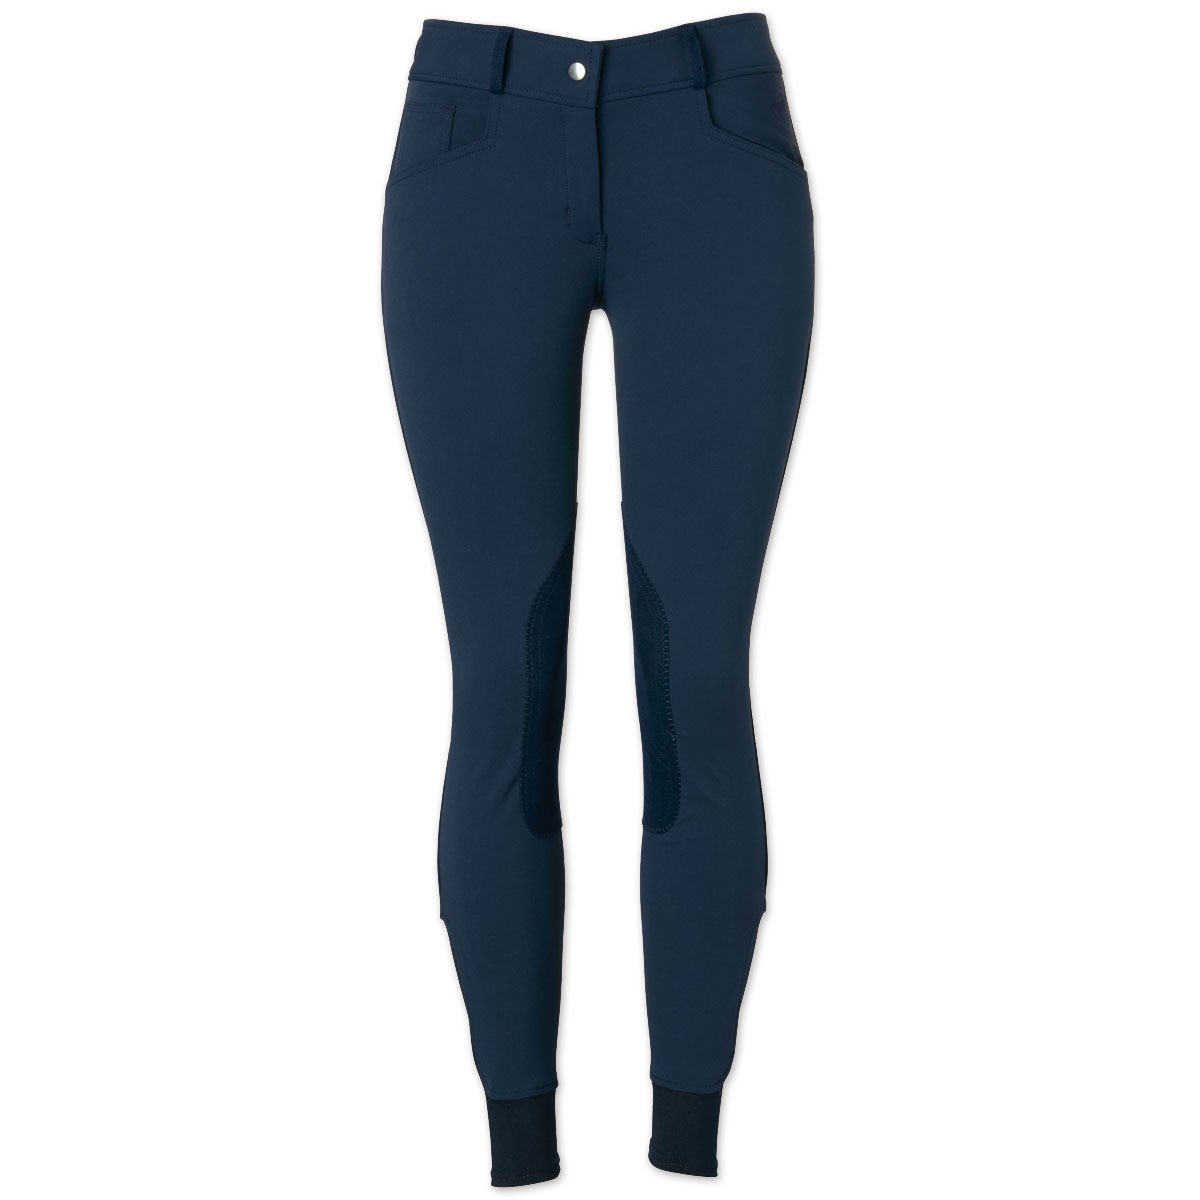 Hadley Knee Patch Breeches by SmartPak